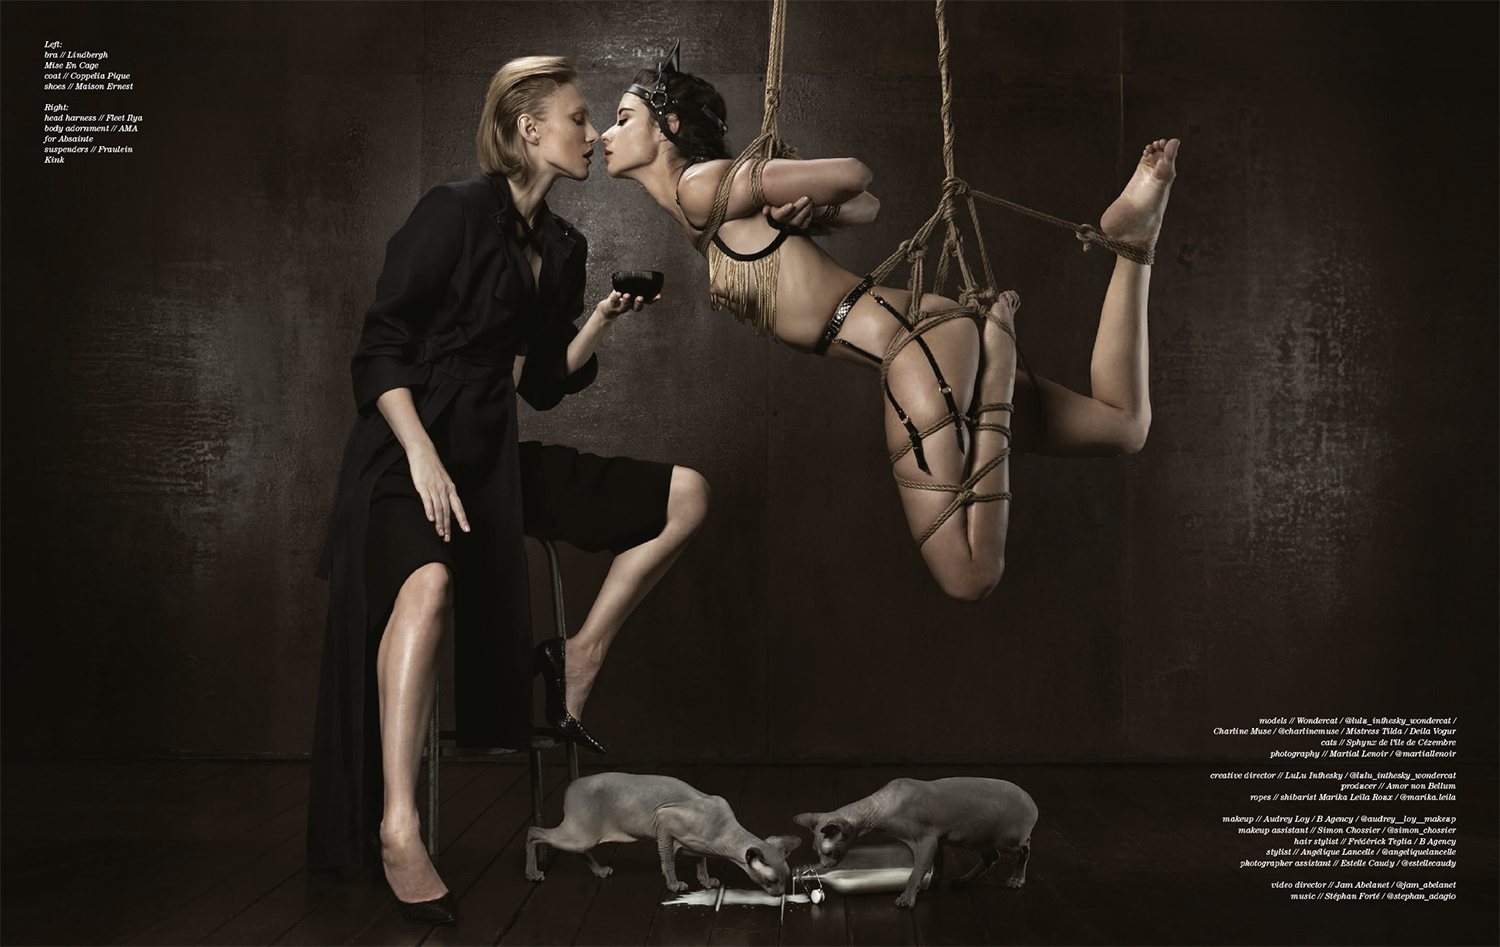 ROPE-ME-TREATS-Lenoir&Inthesky-8